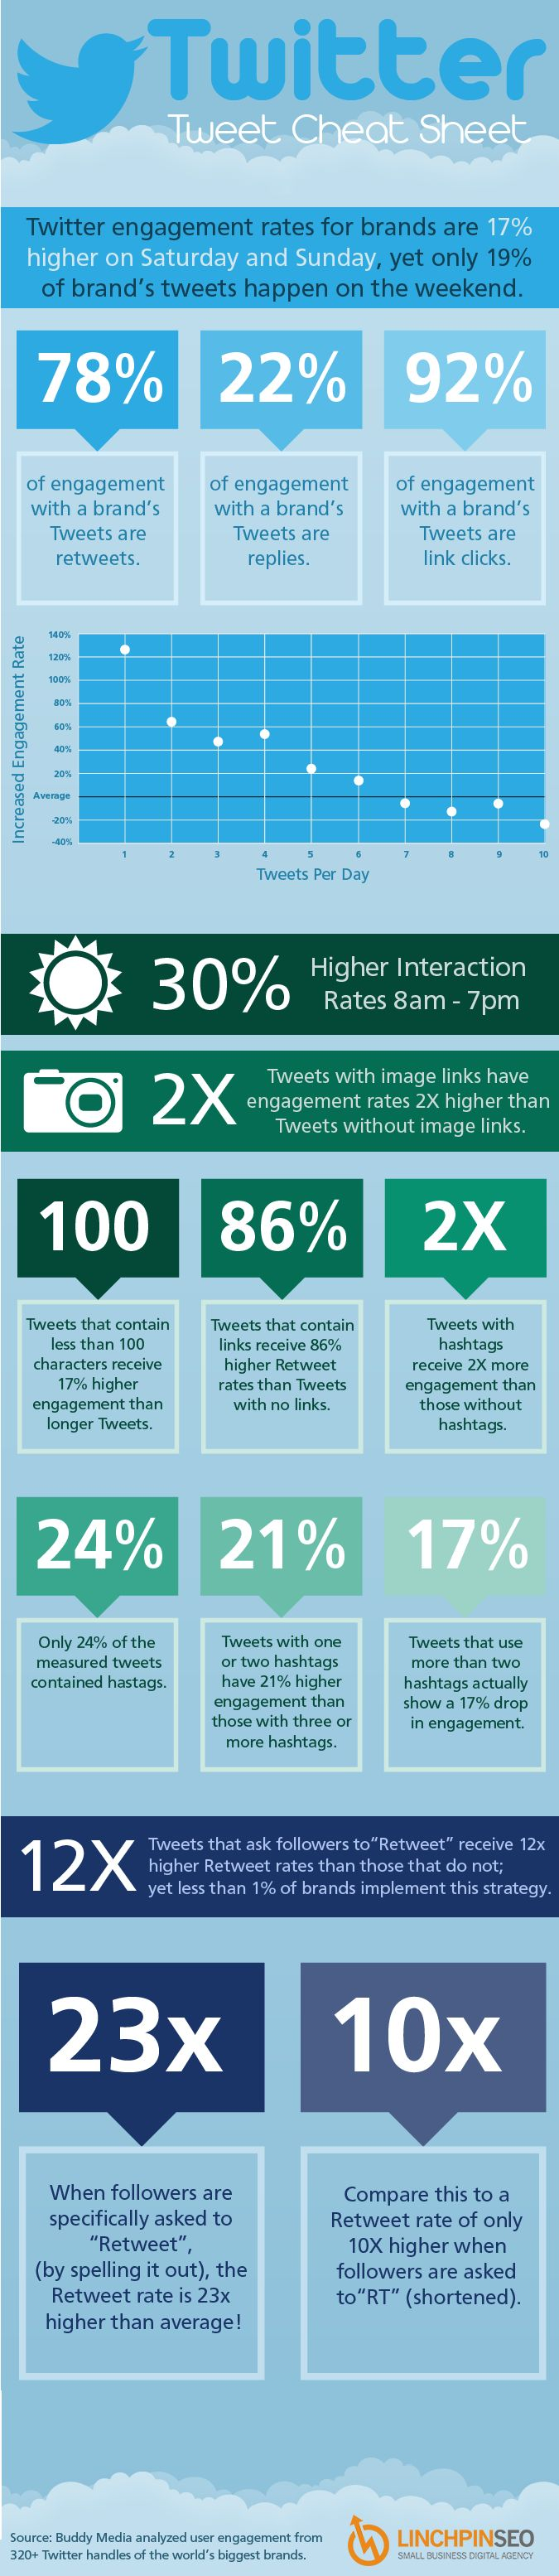 Twitter Cheat Sheet: How to Increase Your Engagement #infographic